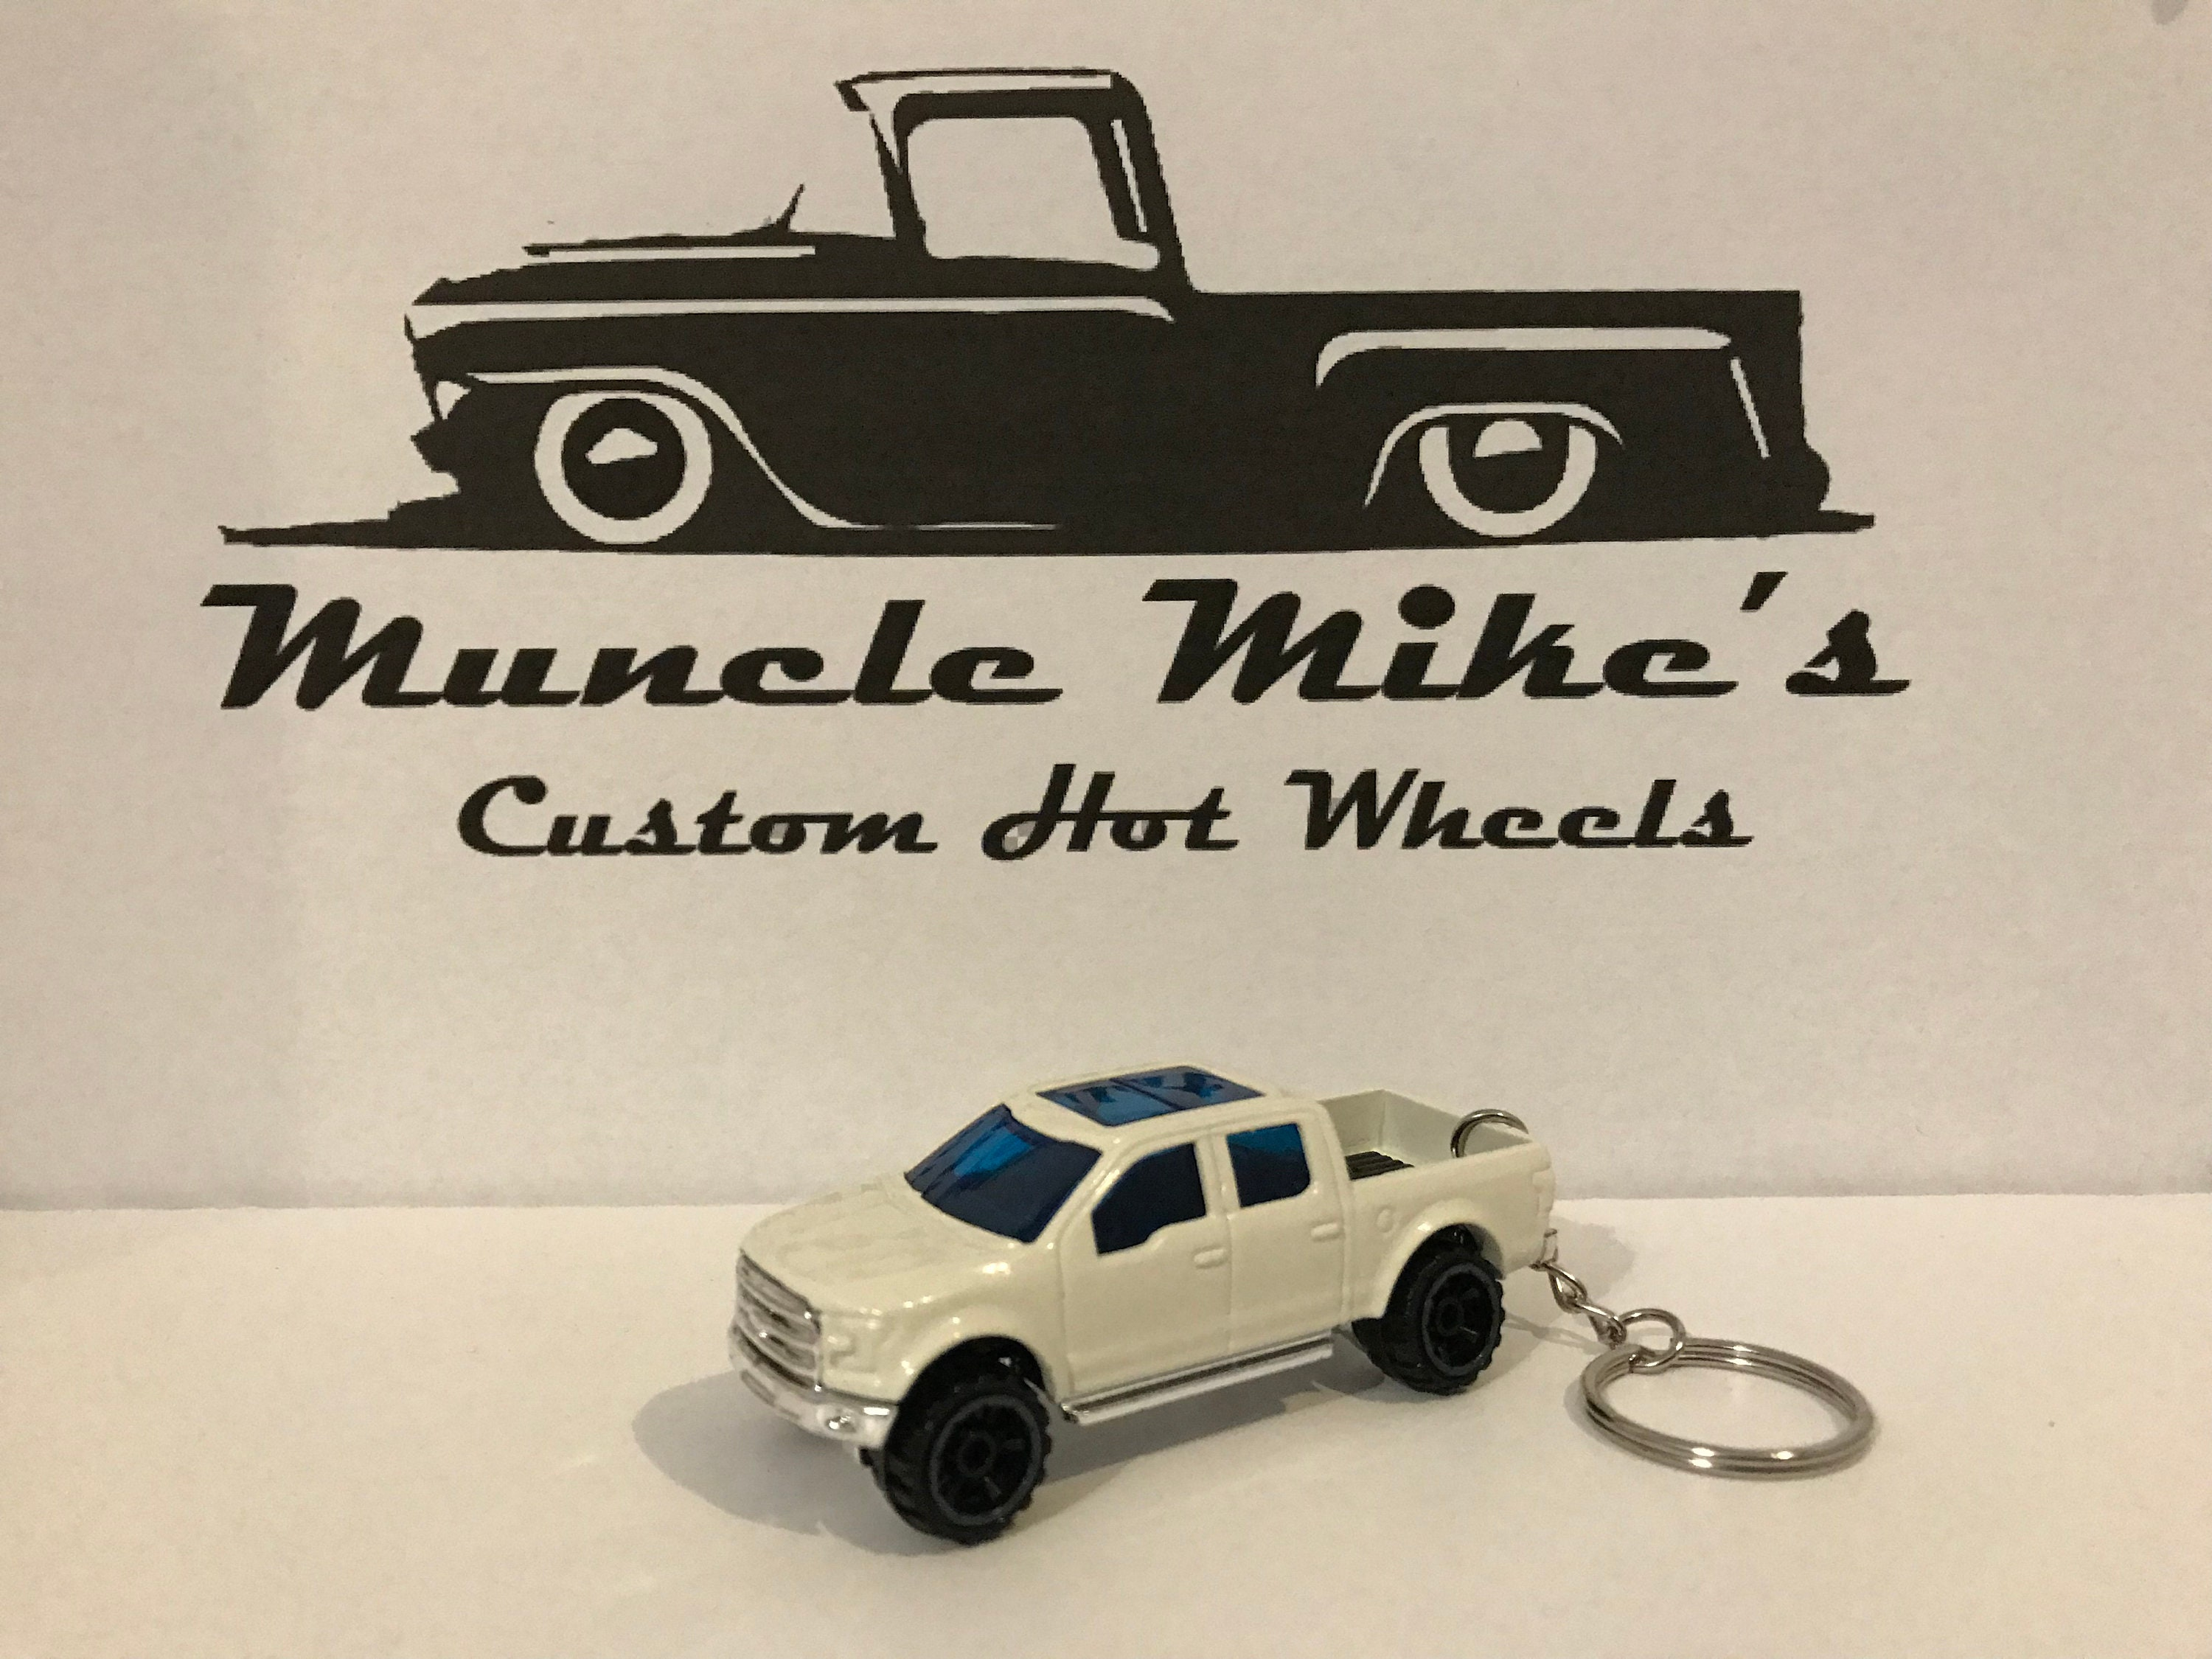 Custom Hot Wheels white 2015 '15 Ford F-150 pickup truck key chain keychain custom painted